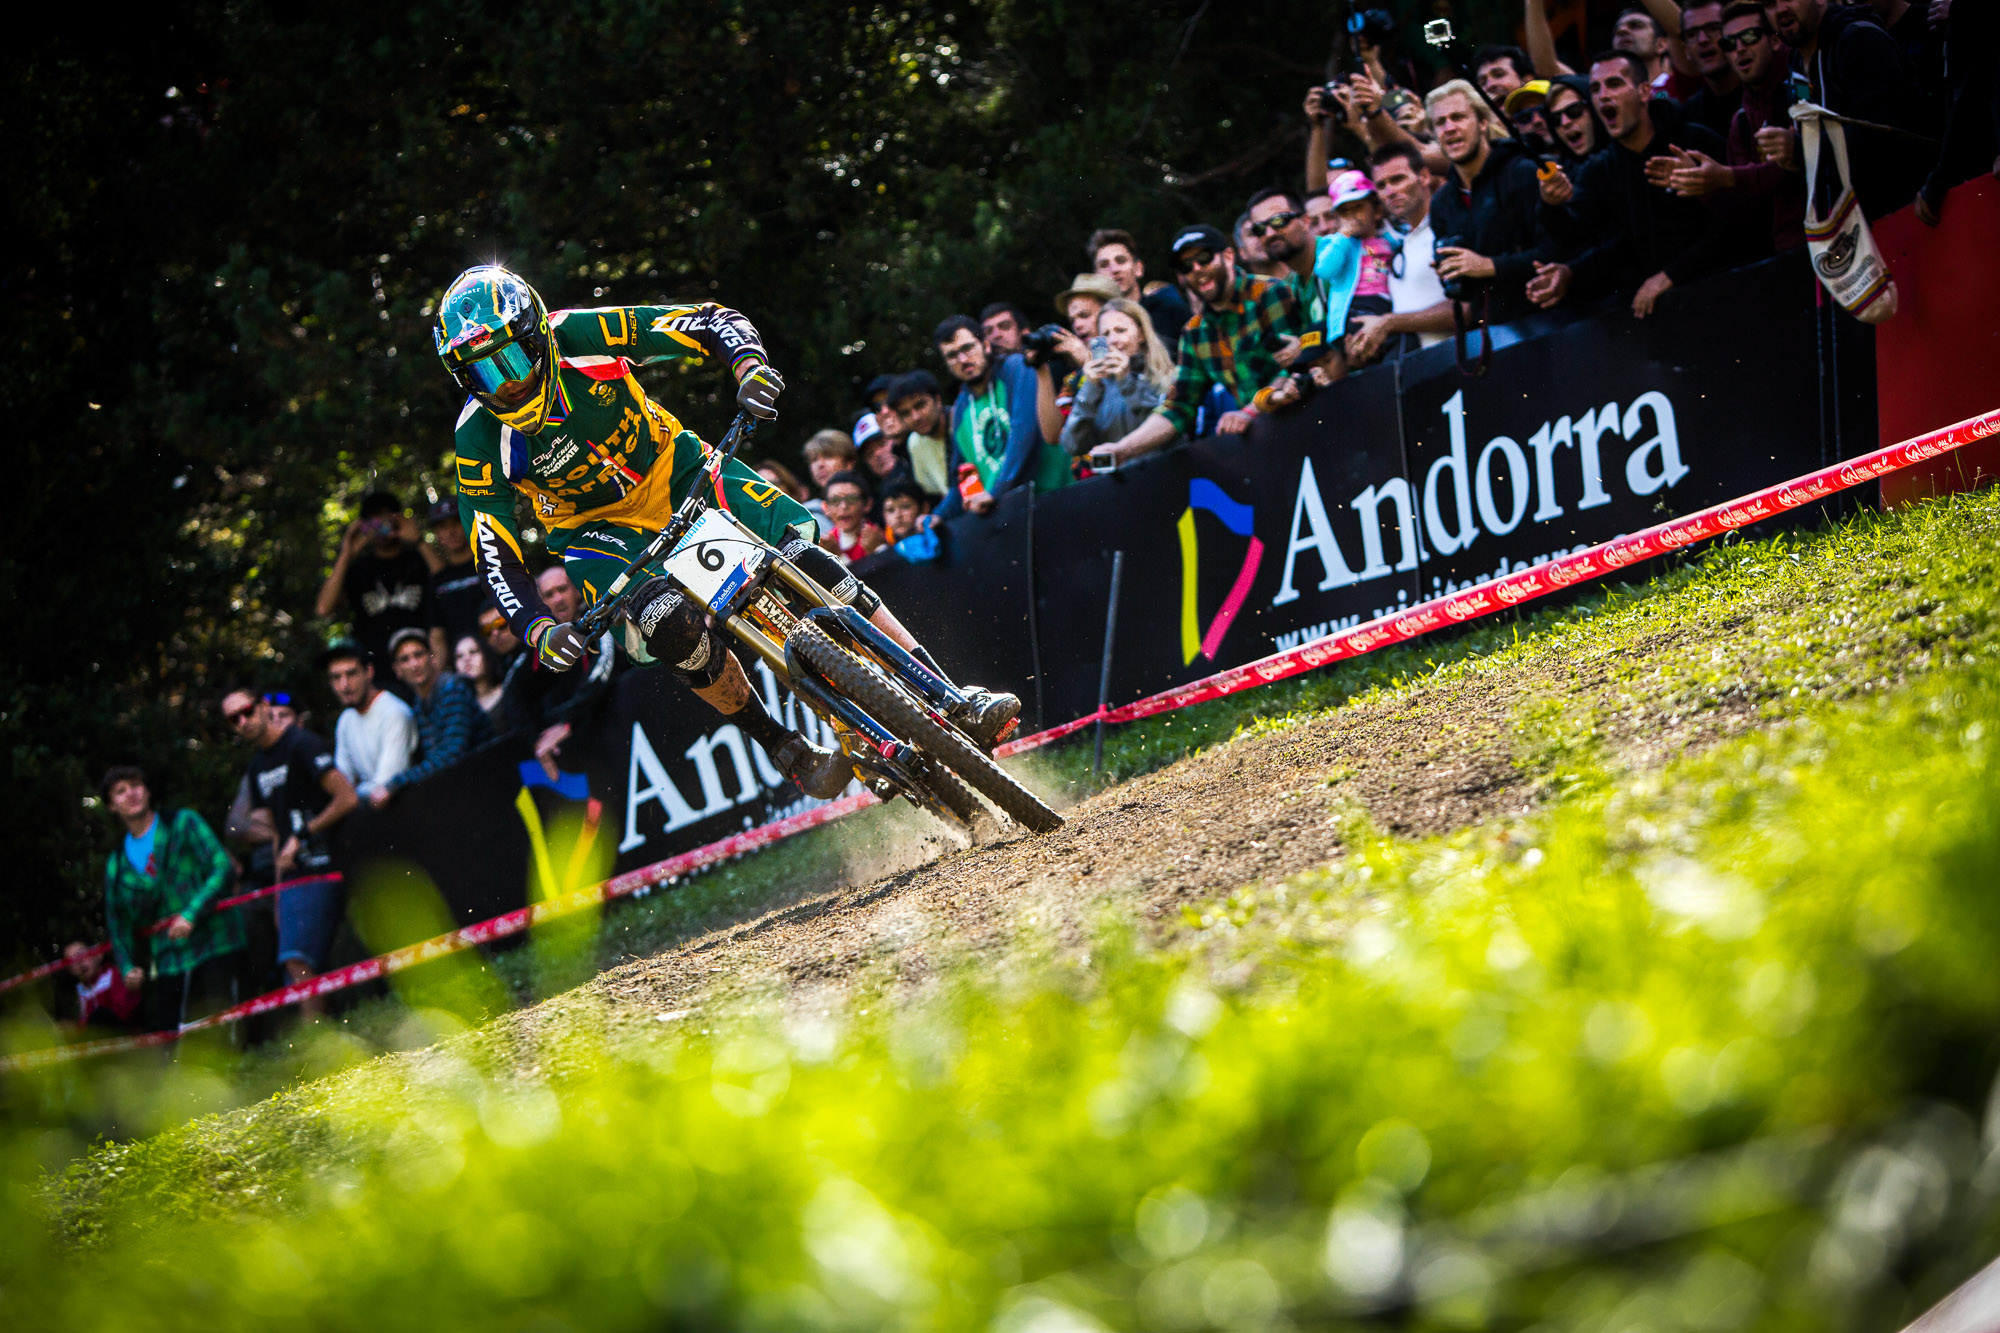 Downhill World Champs 2015 Andorra